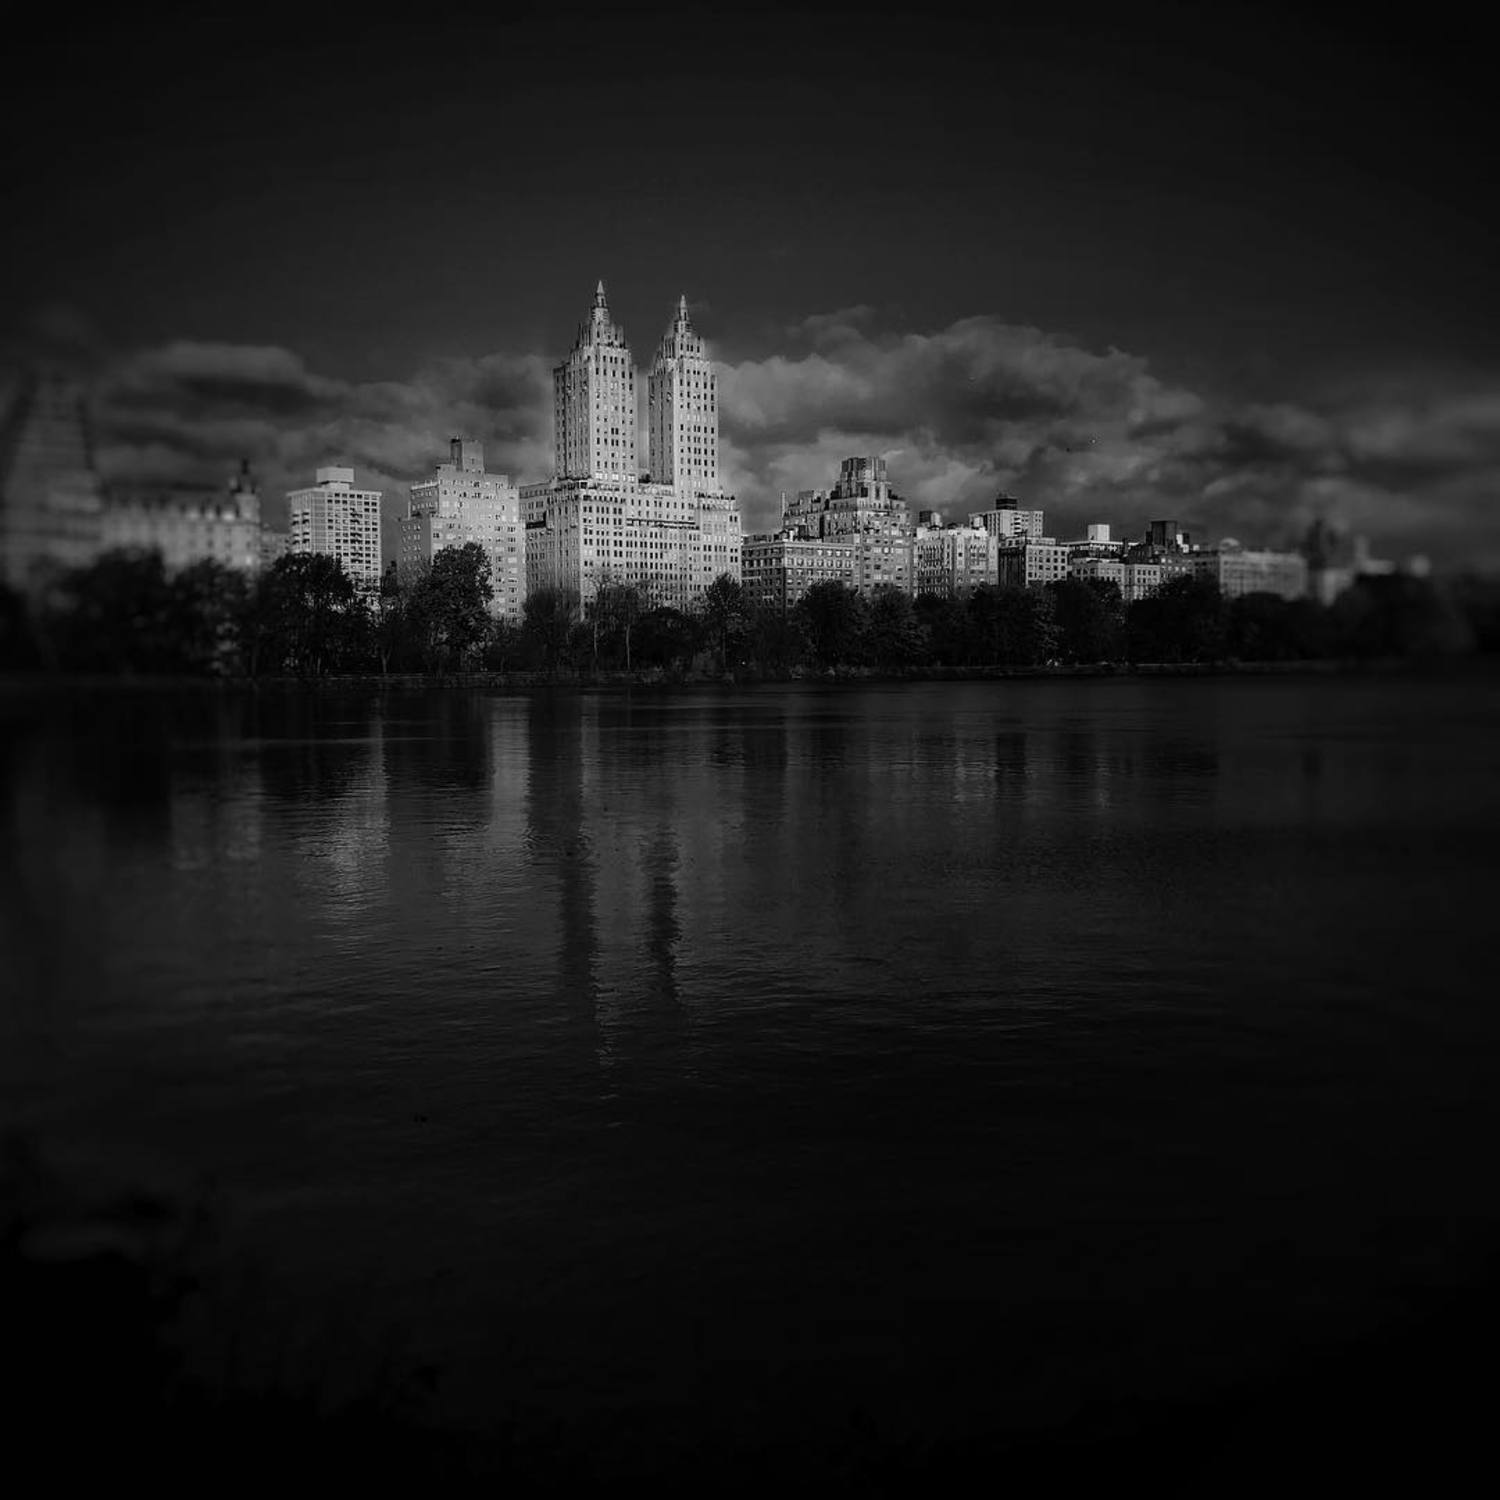 New York 30x11x16 #photo #photos #pic #pics #picture #photographer #pictures #snapshot #art #beautiful #instagood #picoftheday #photooftheday #blackandwhite #all_shots #exposure #composition #focus #capture #follow4follow #folkgood #monoart #like4like